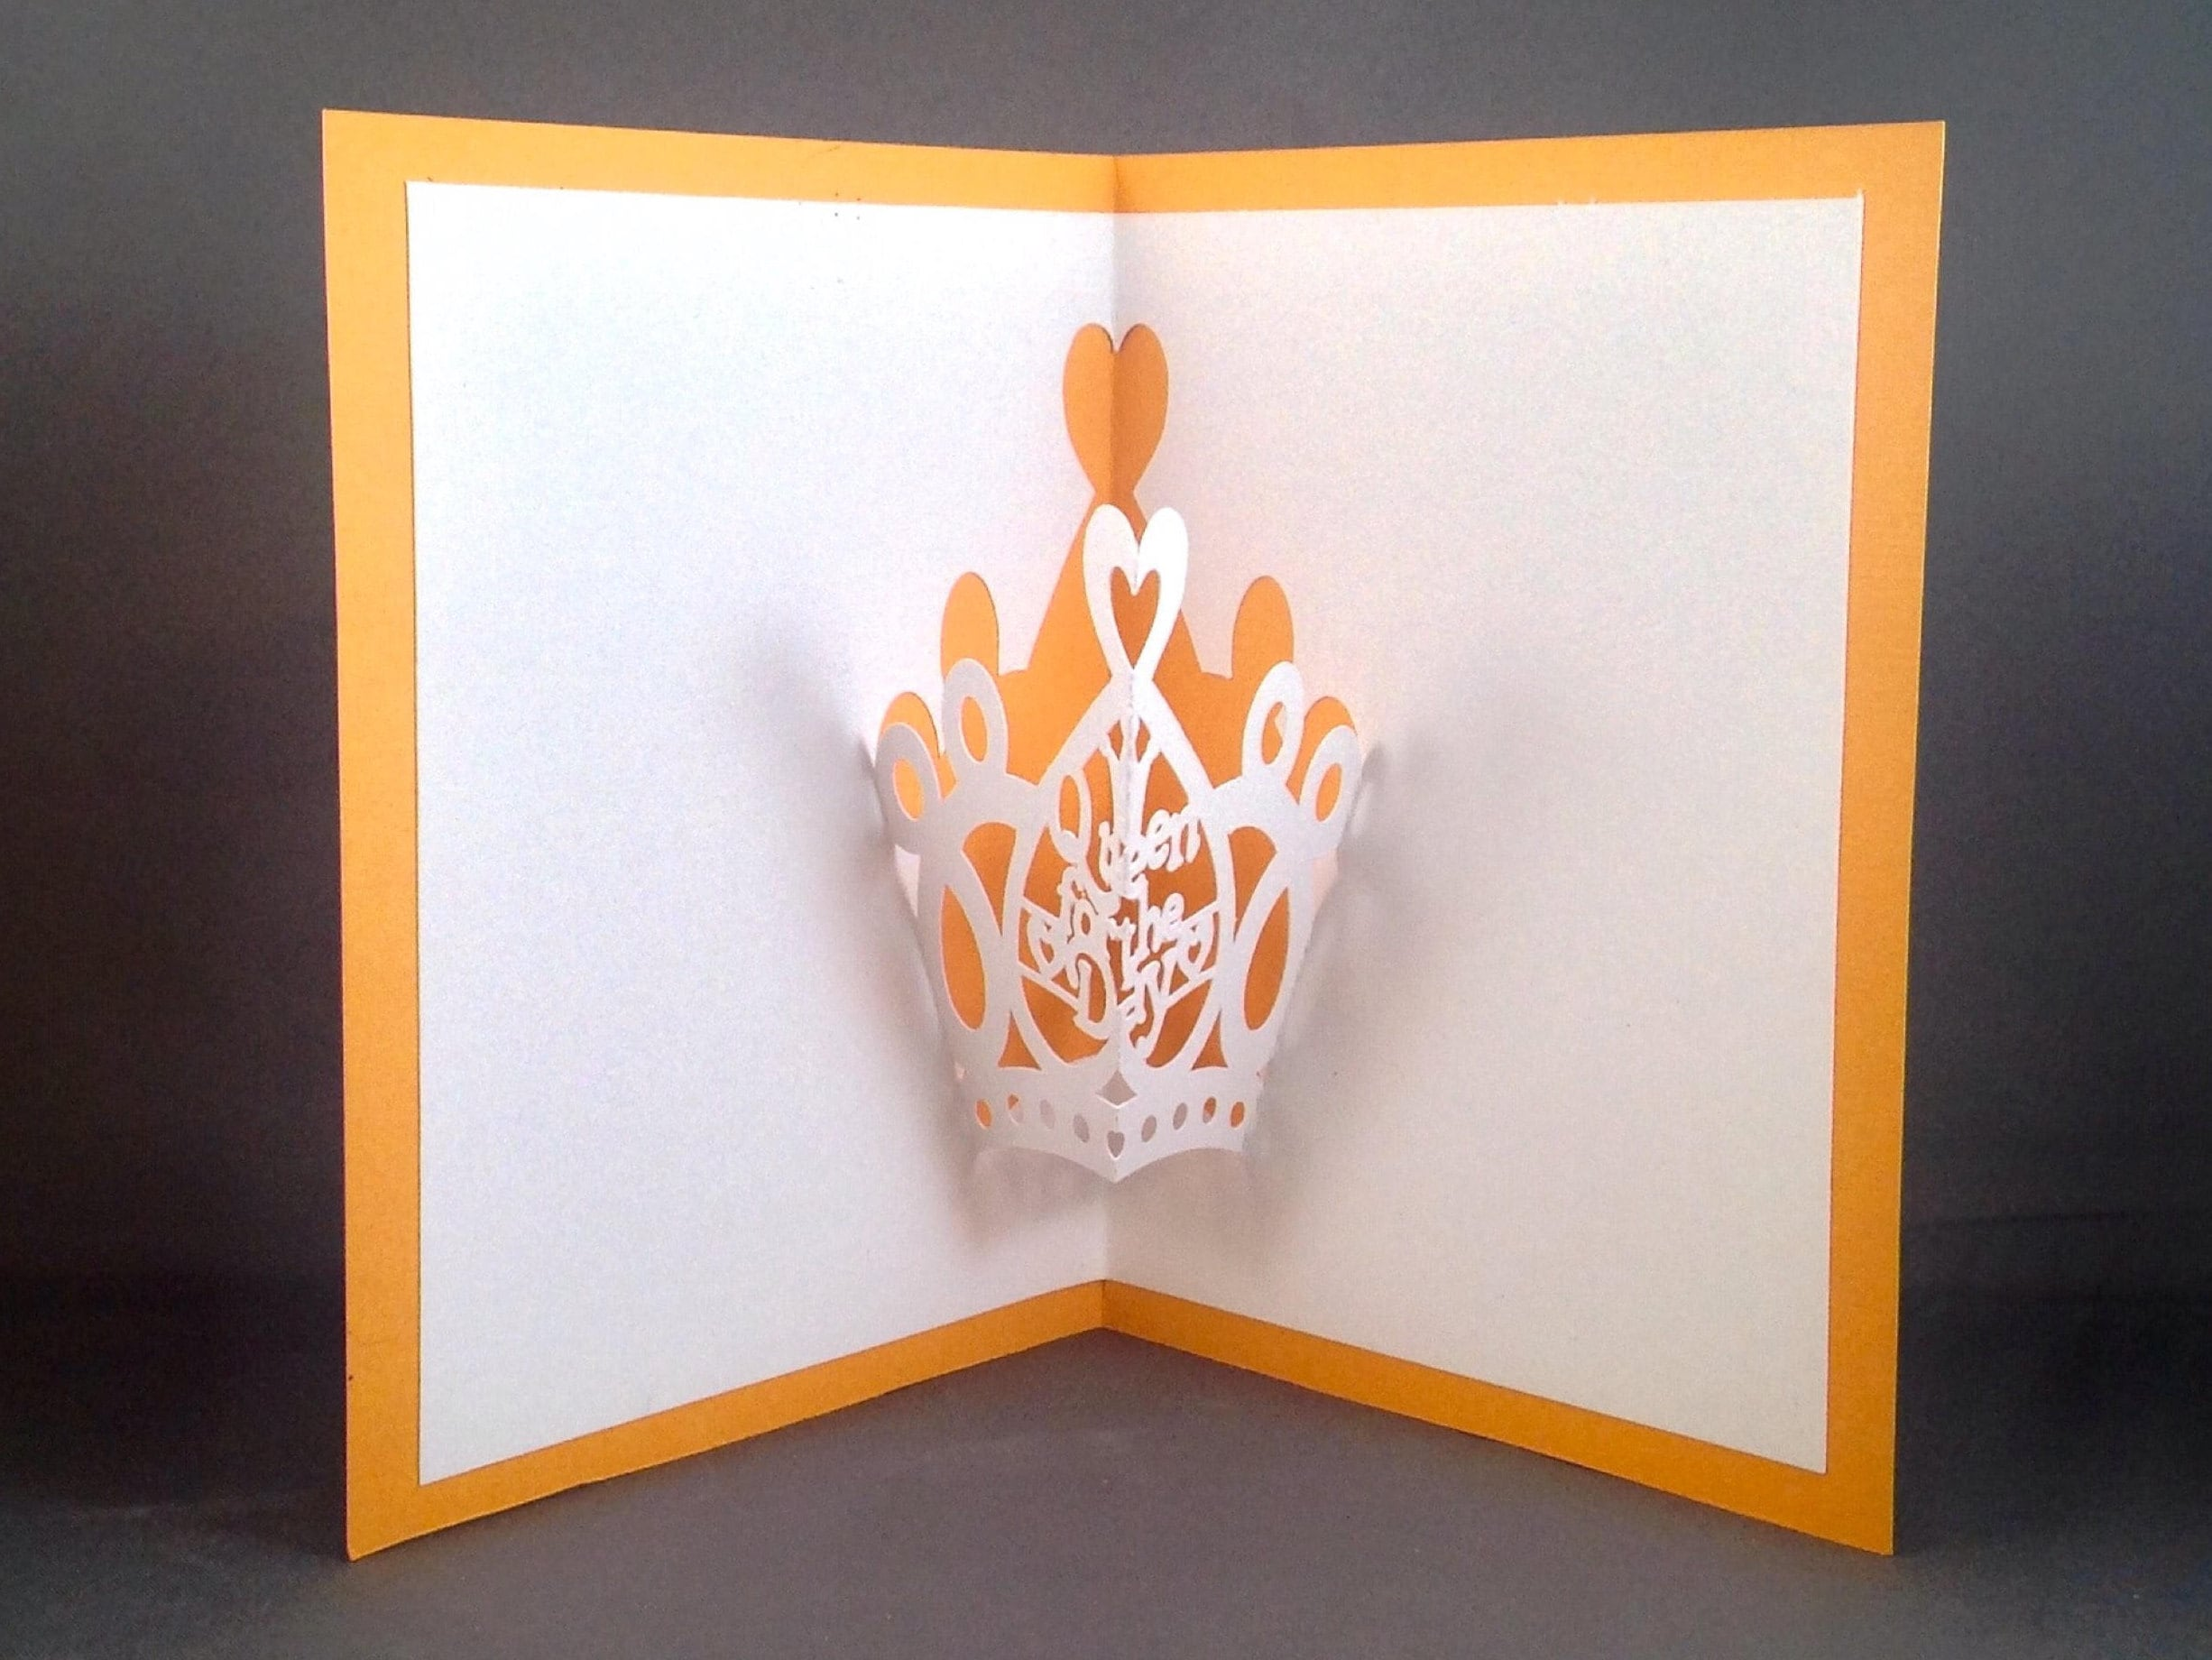 Queen for a day funny birthday cards for girlfriend card for queen for a day funny birthday cards for girlfriend card for girlfriend queen of hearts mothers day cards daughter birthday card for her bookmarktalkfo Choice Image